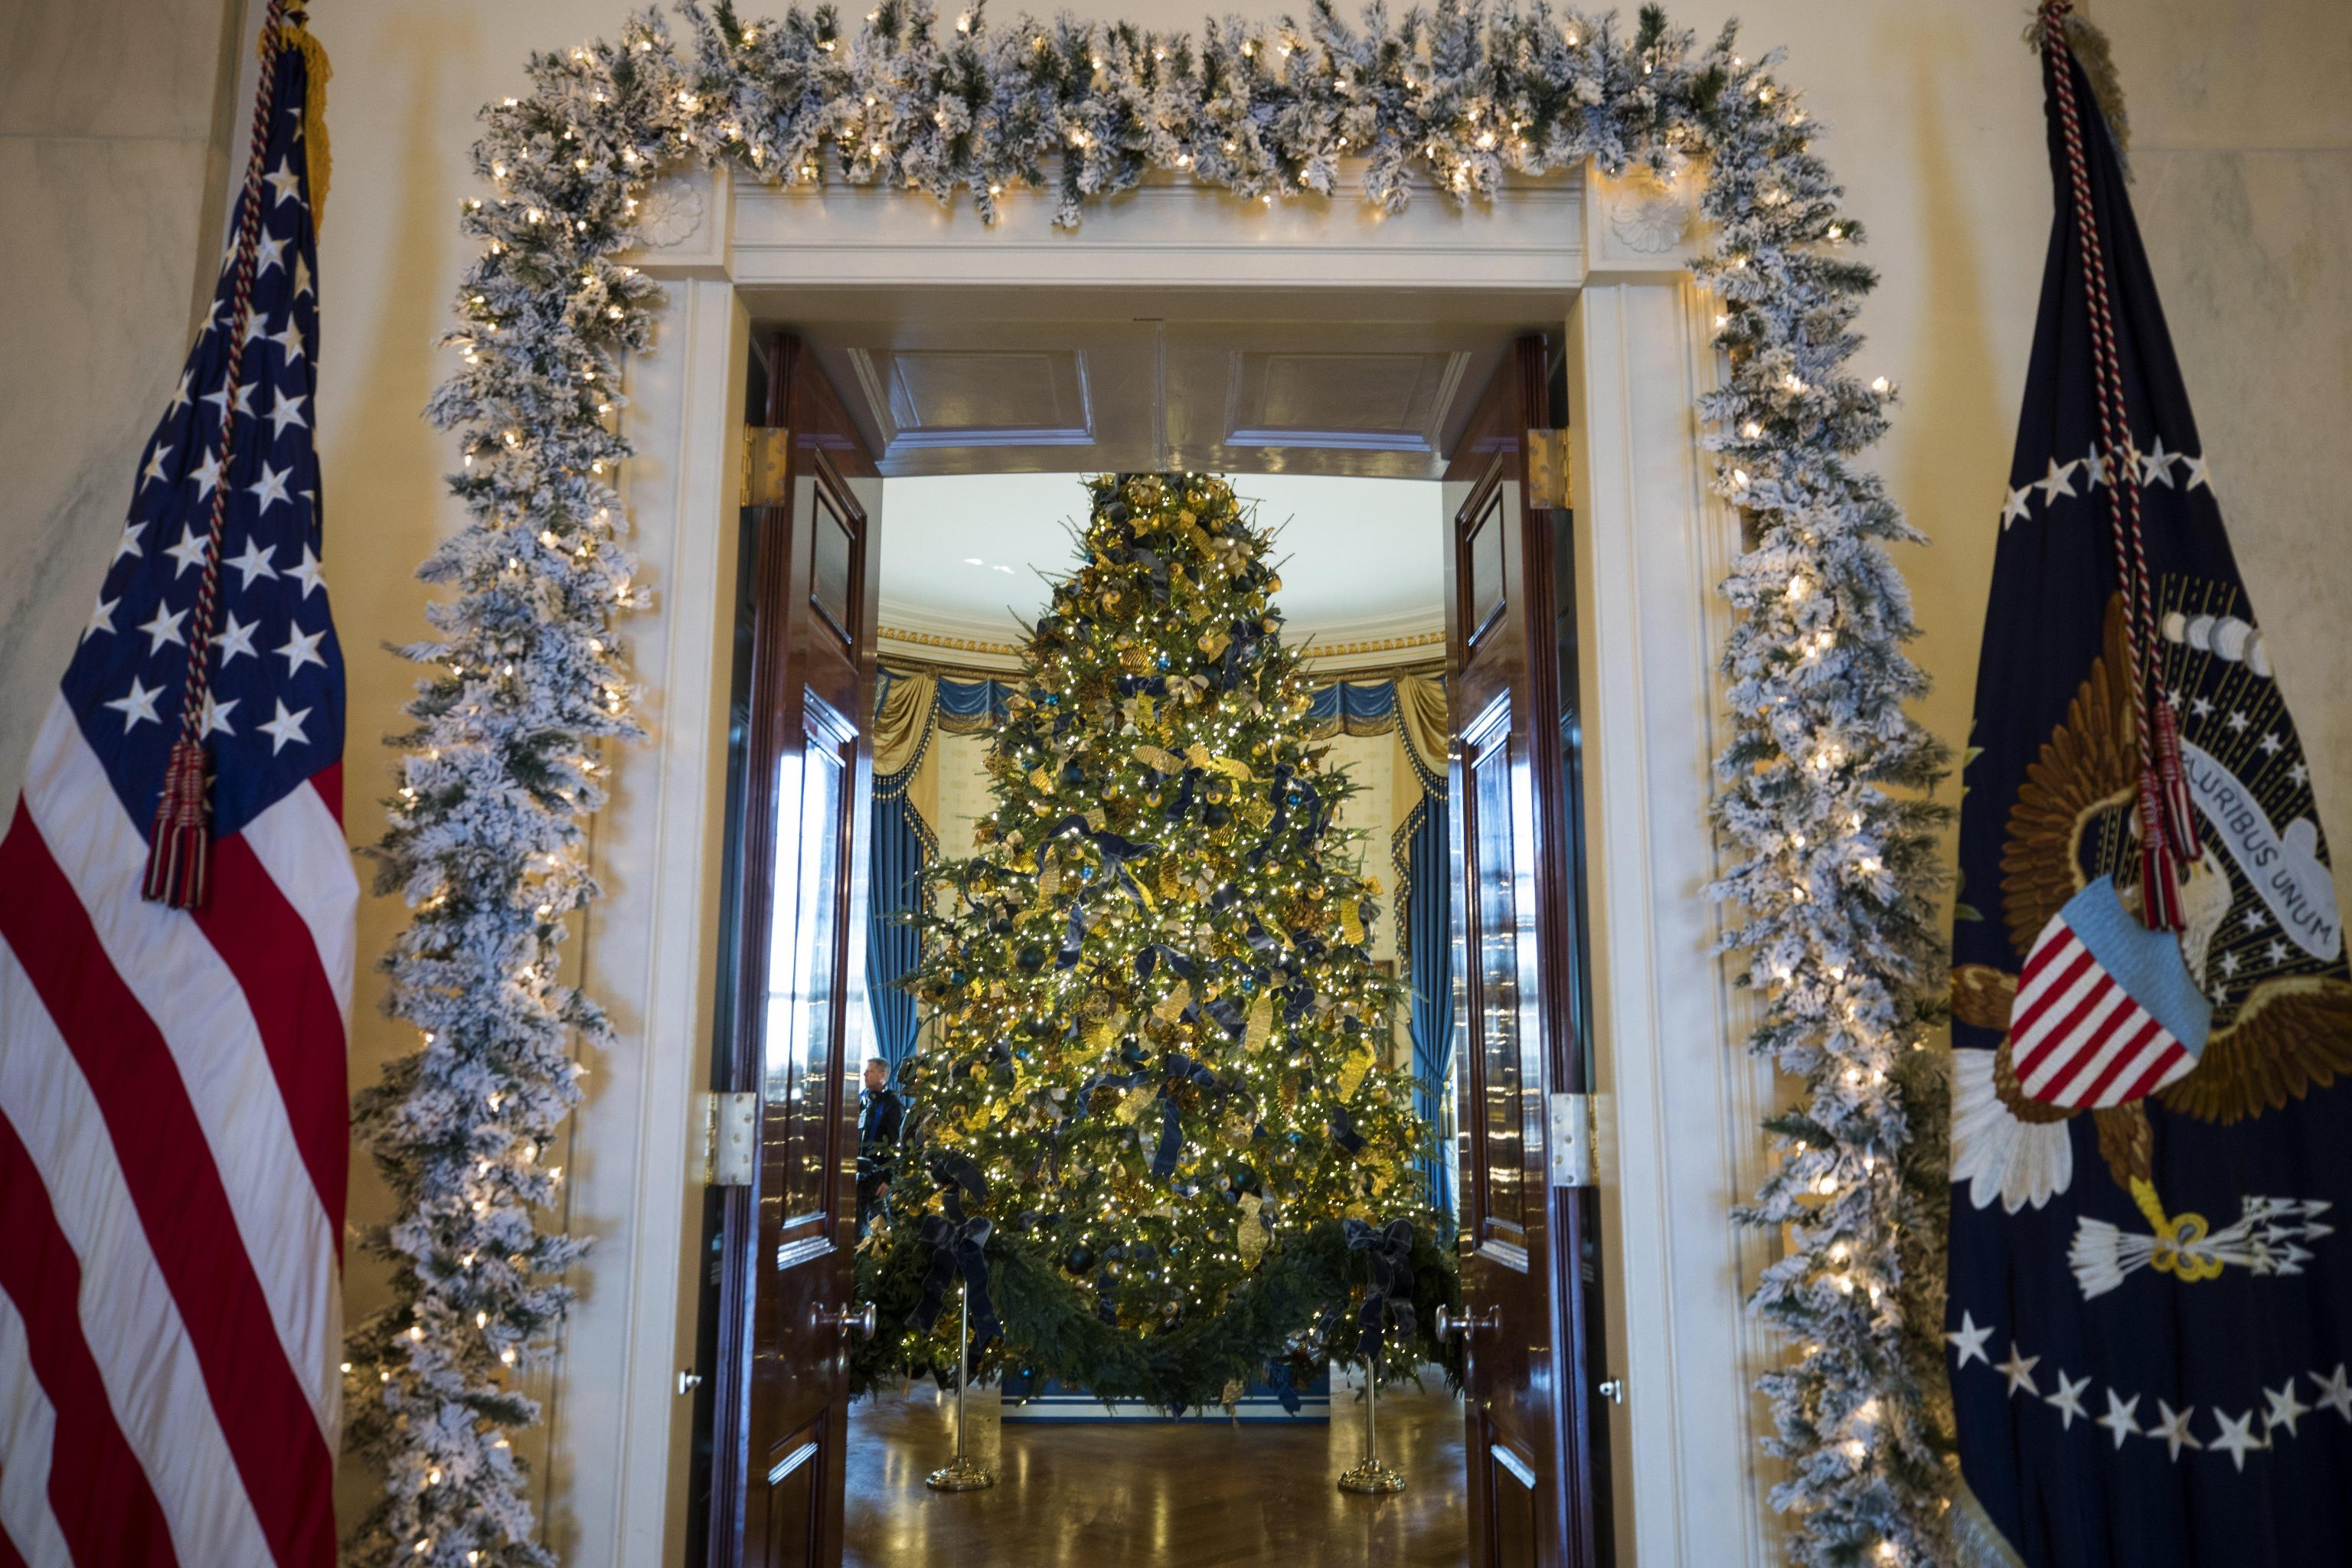 Holiday Decor at the White House